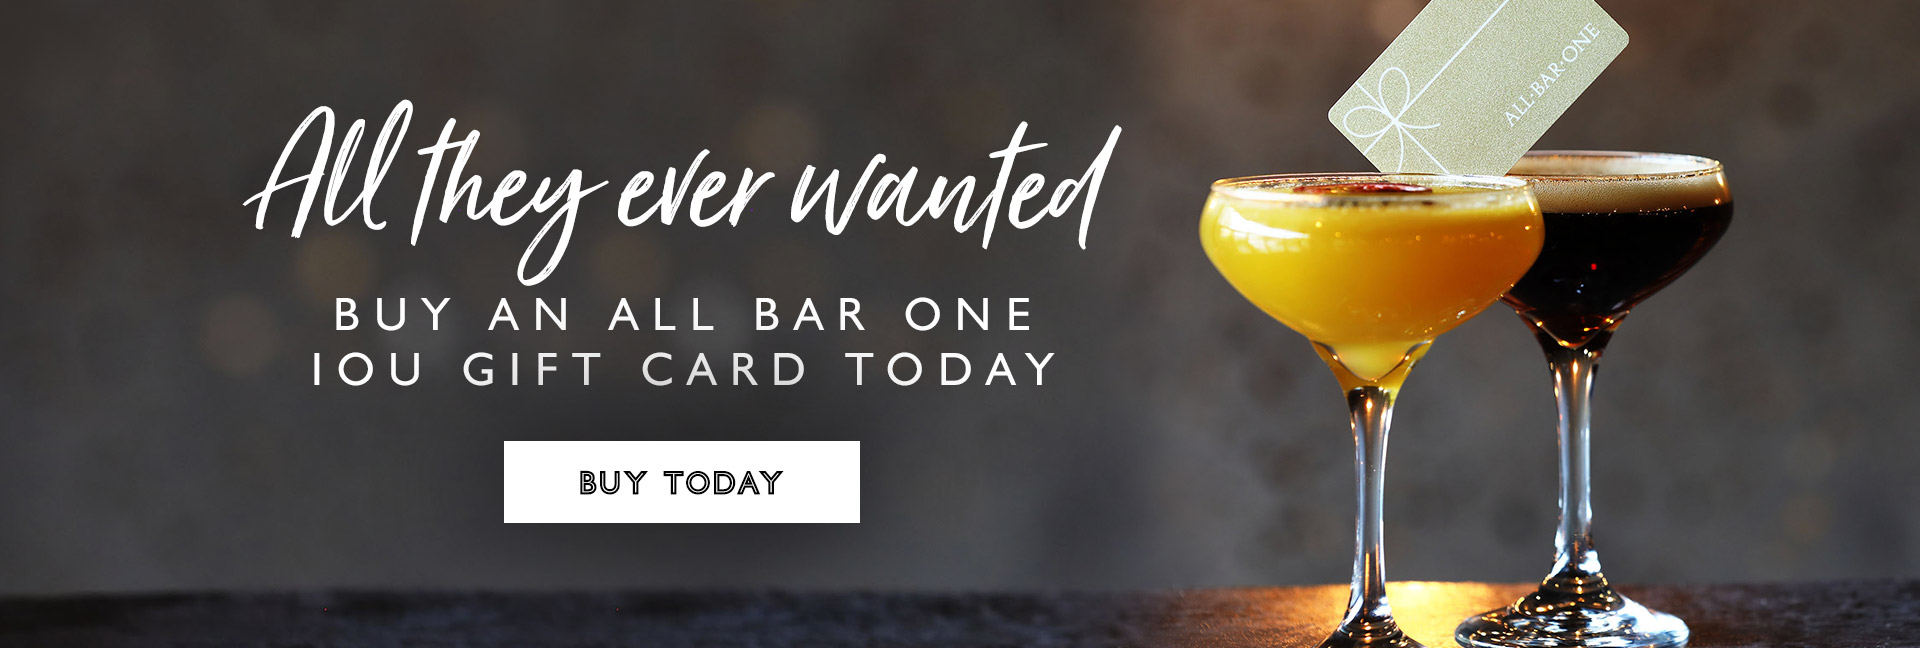 Buy an All Bar One gift card